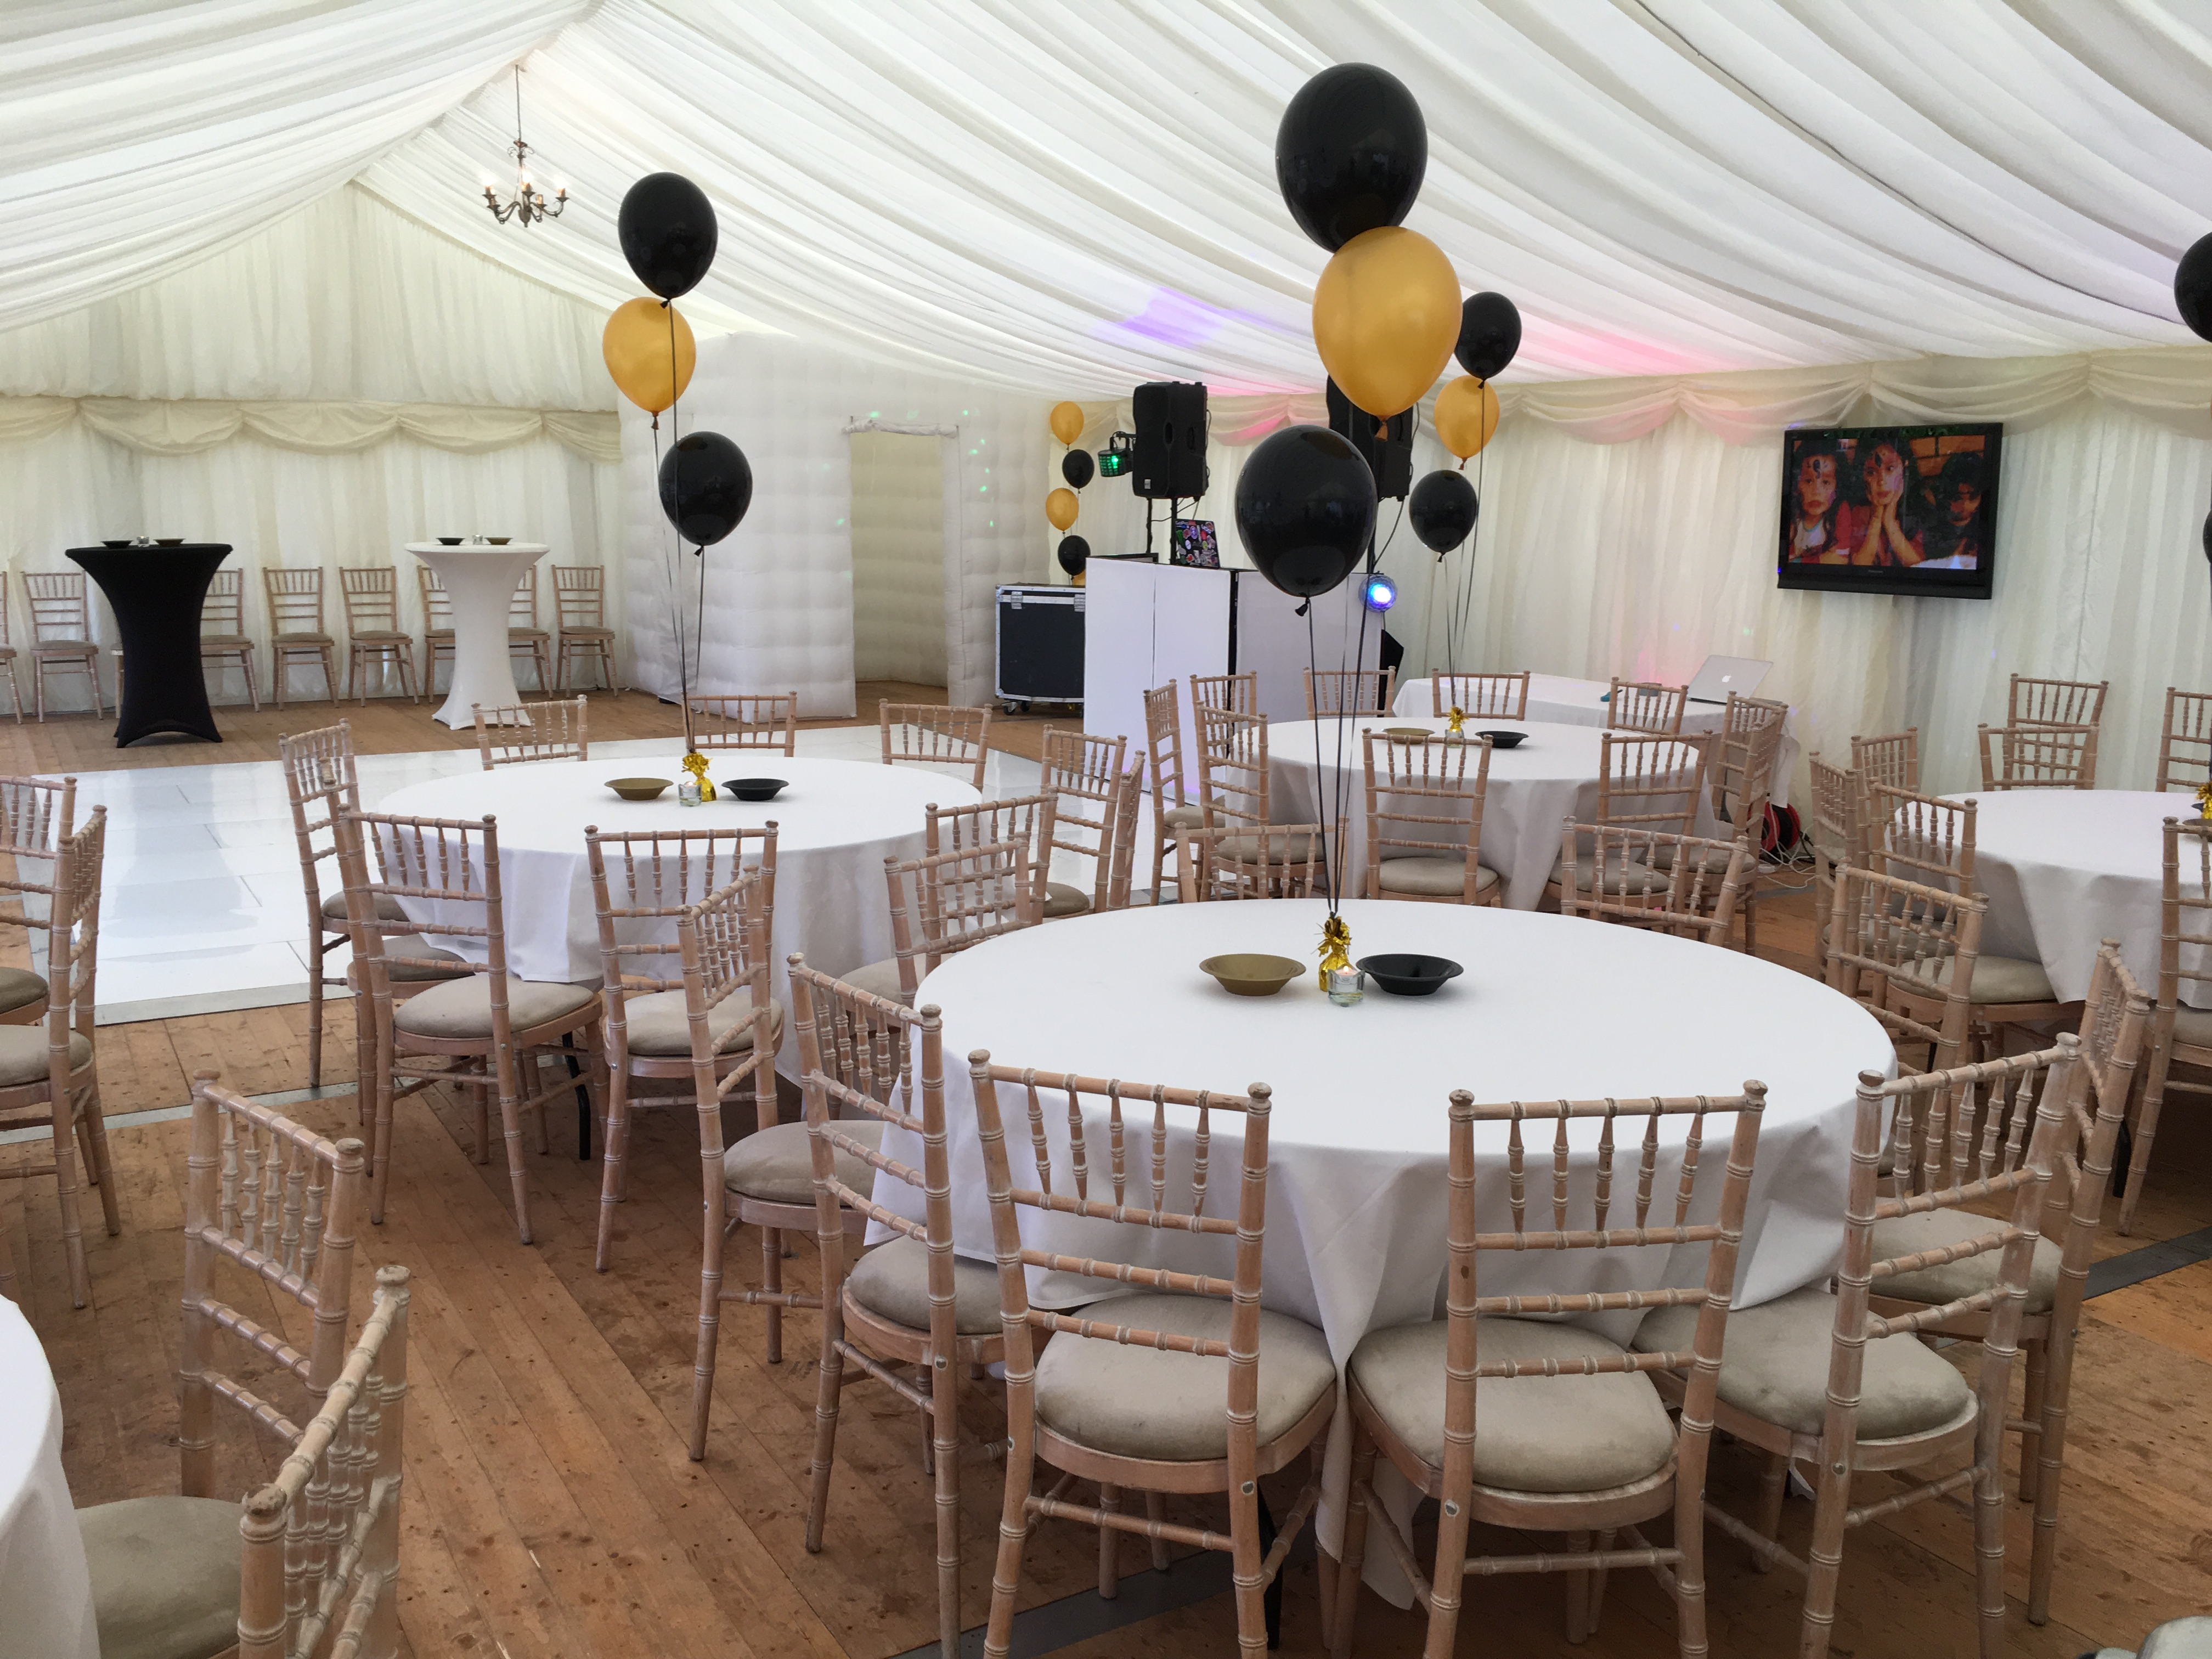 Dream Events Management - 21st Birthday Party June 2017 No.1